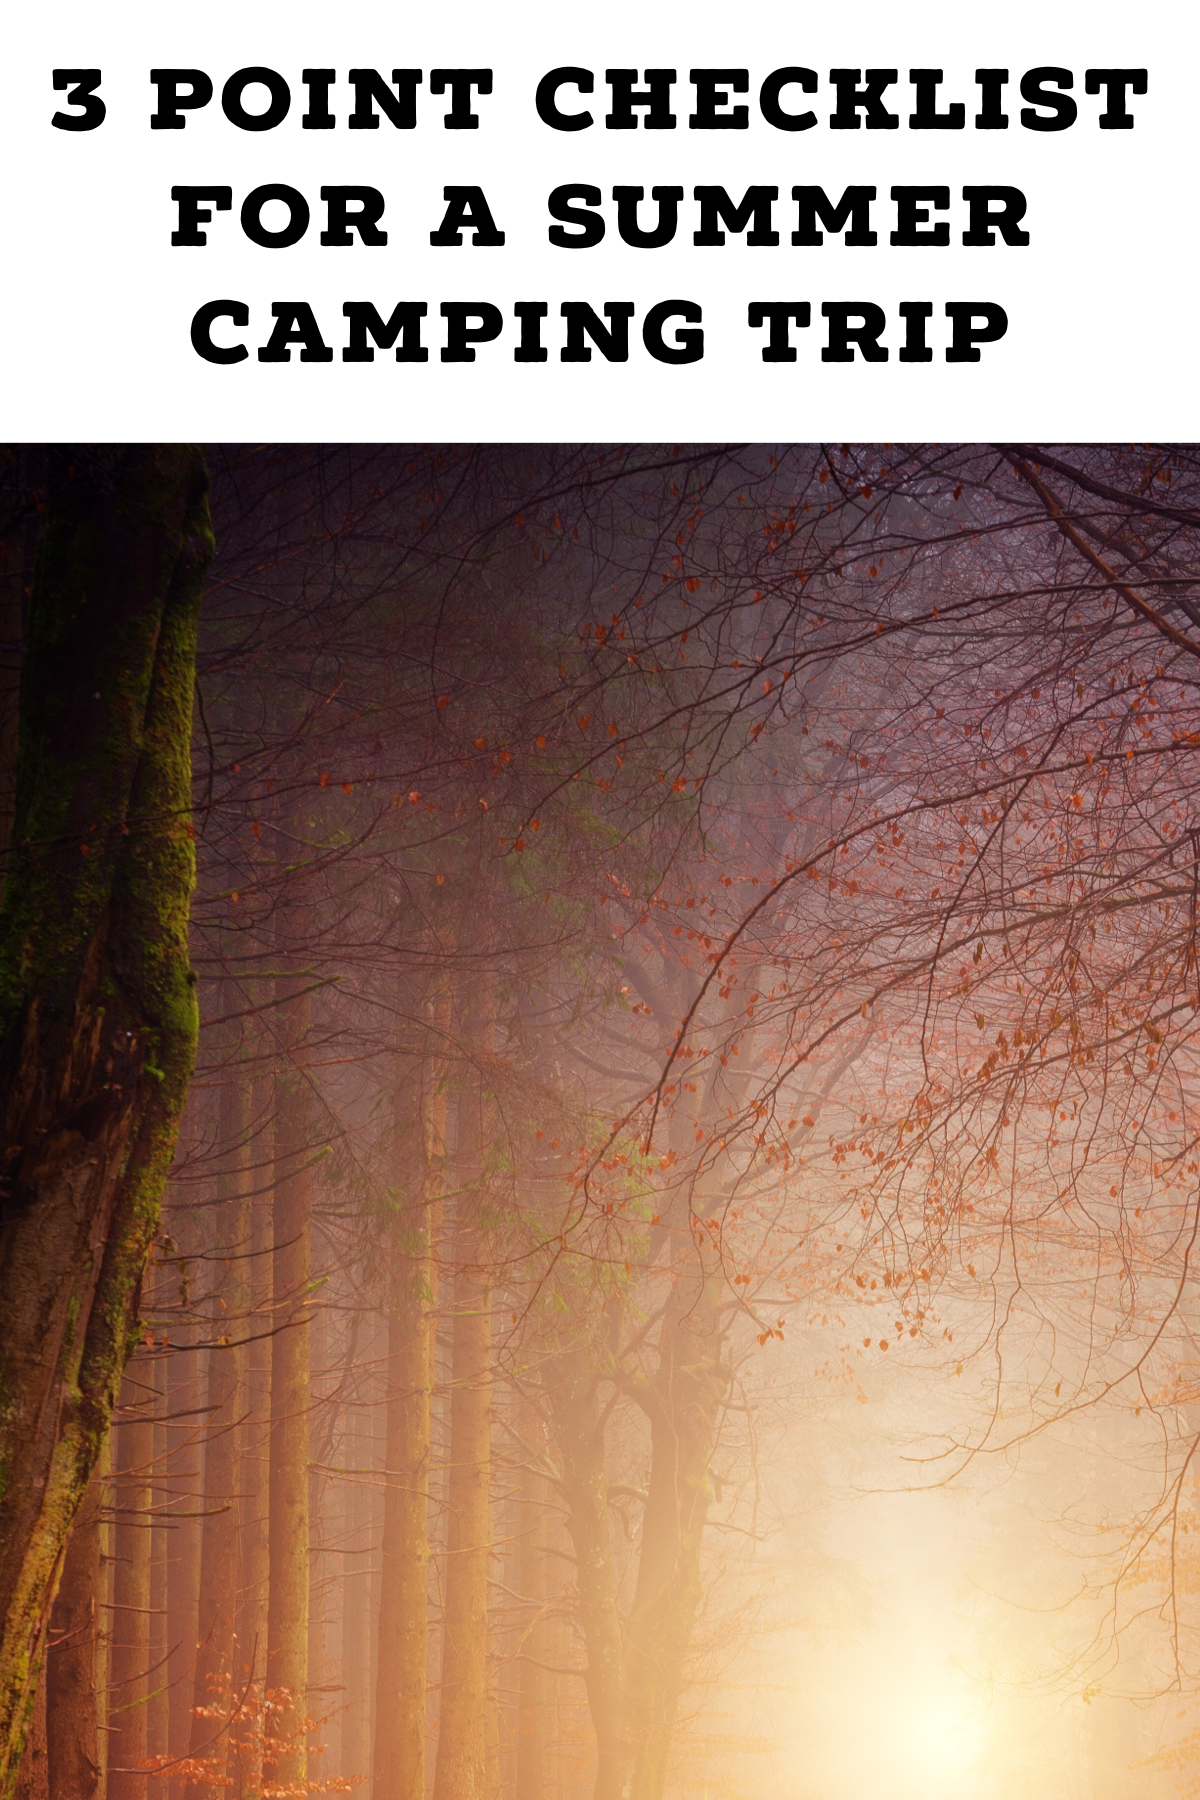 Pinterest image for 3 Point Checklist For A Summer Camping Trip